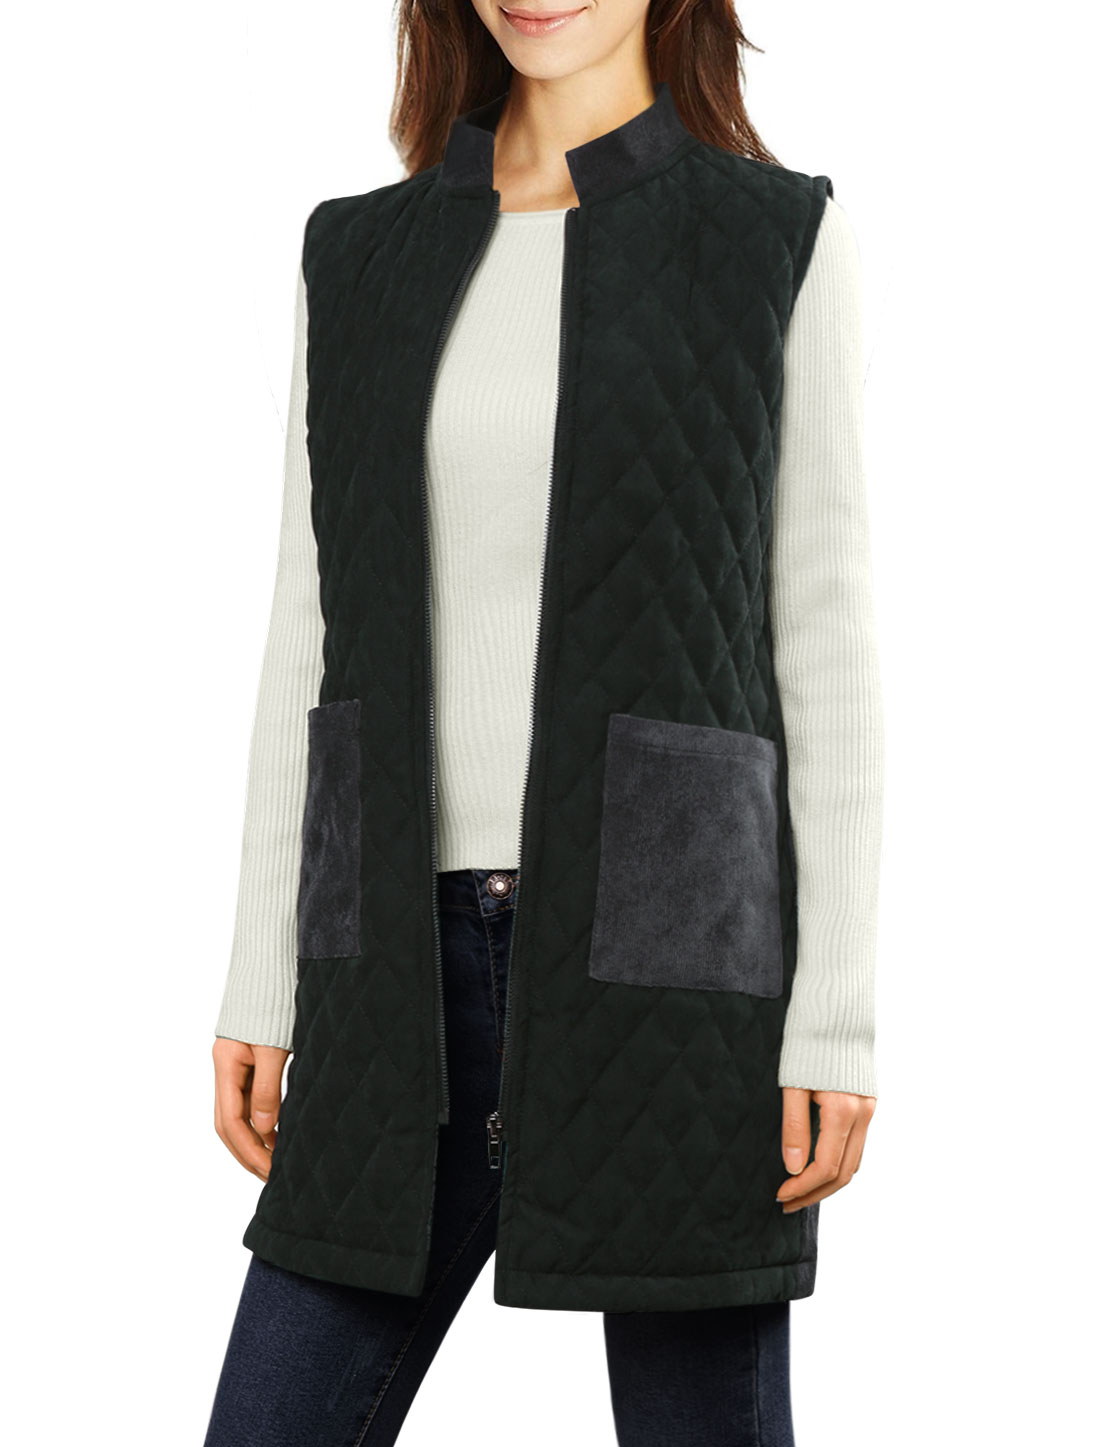 Woman Stand Collar Zip Up Corduroy Quilted Tunic Vest Charcoal Gray S